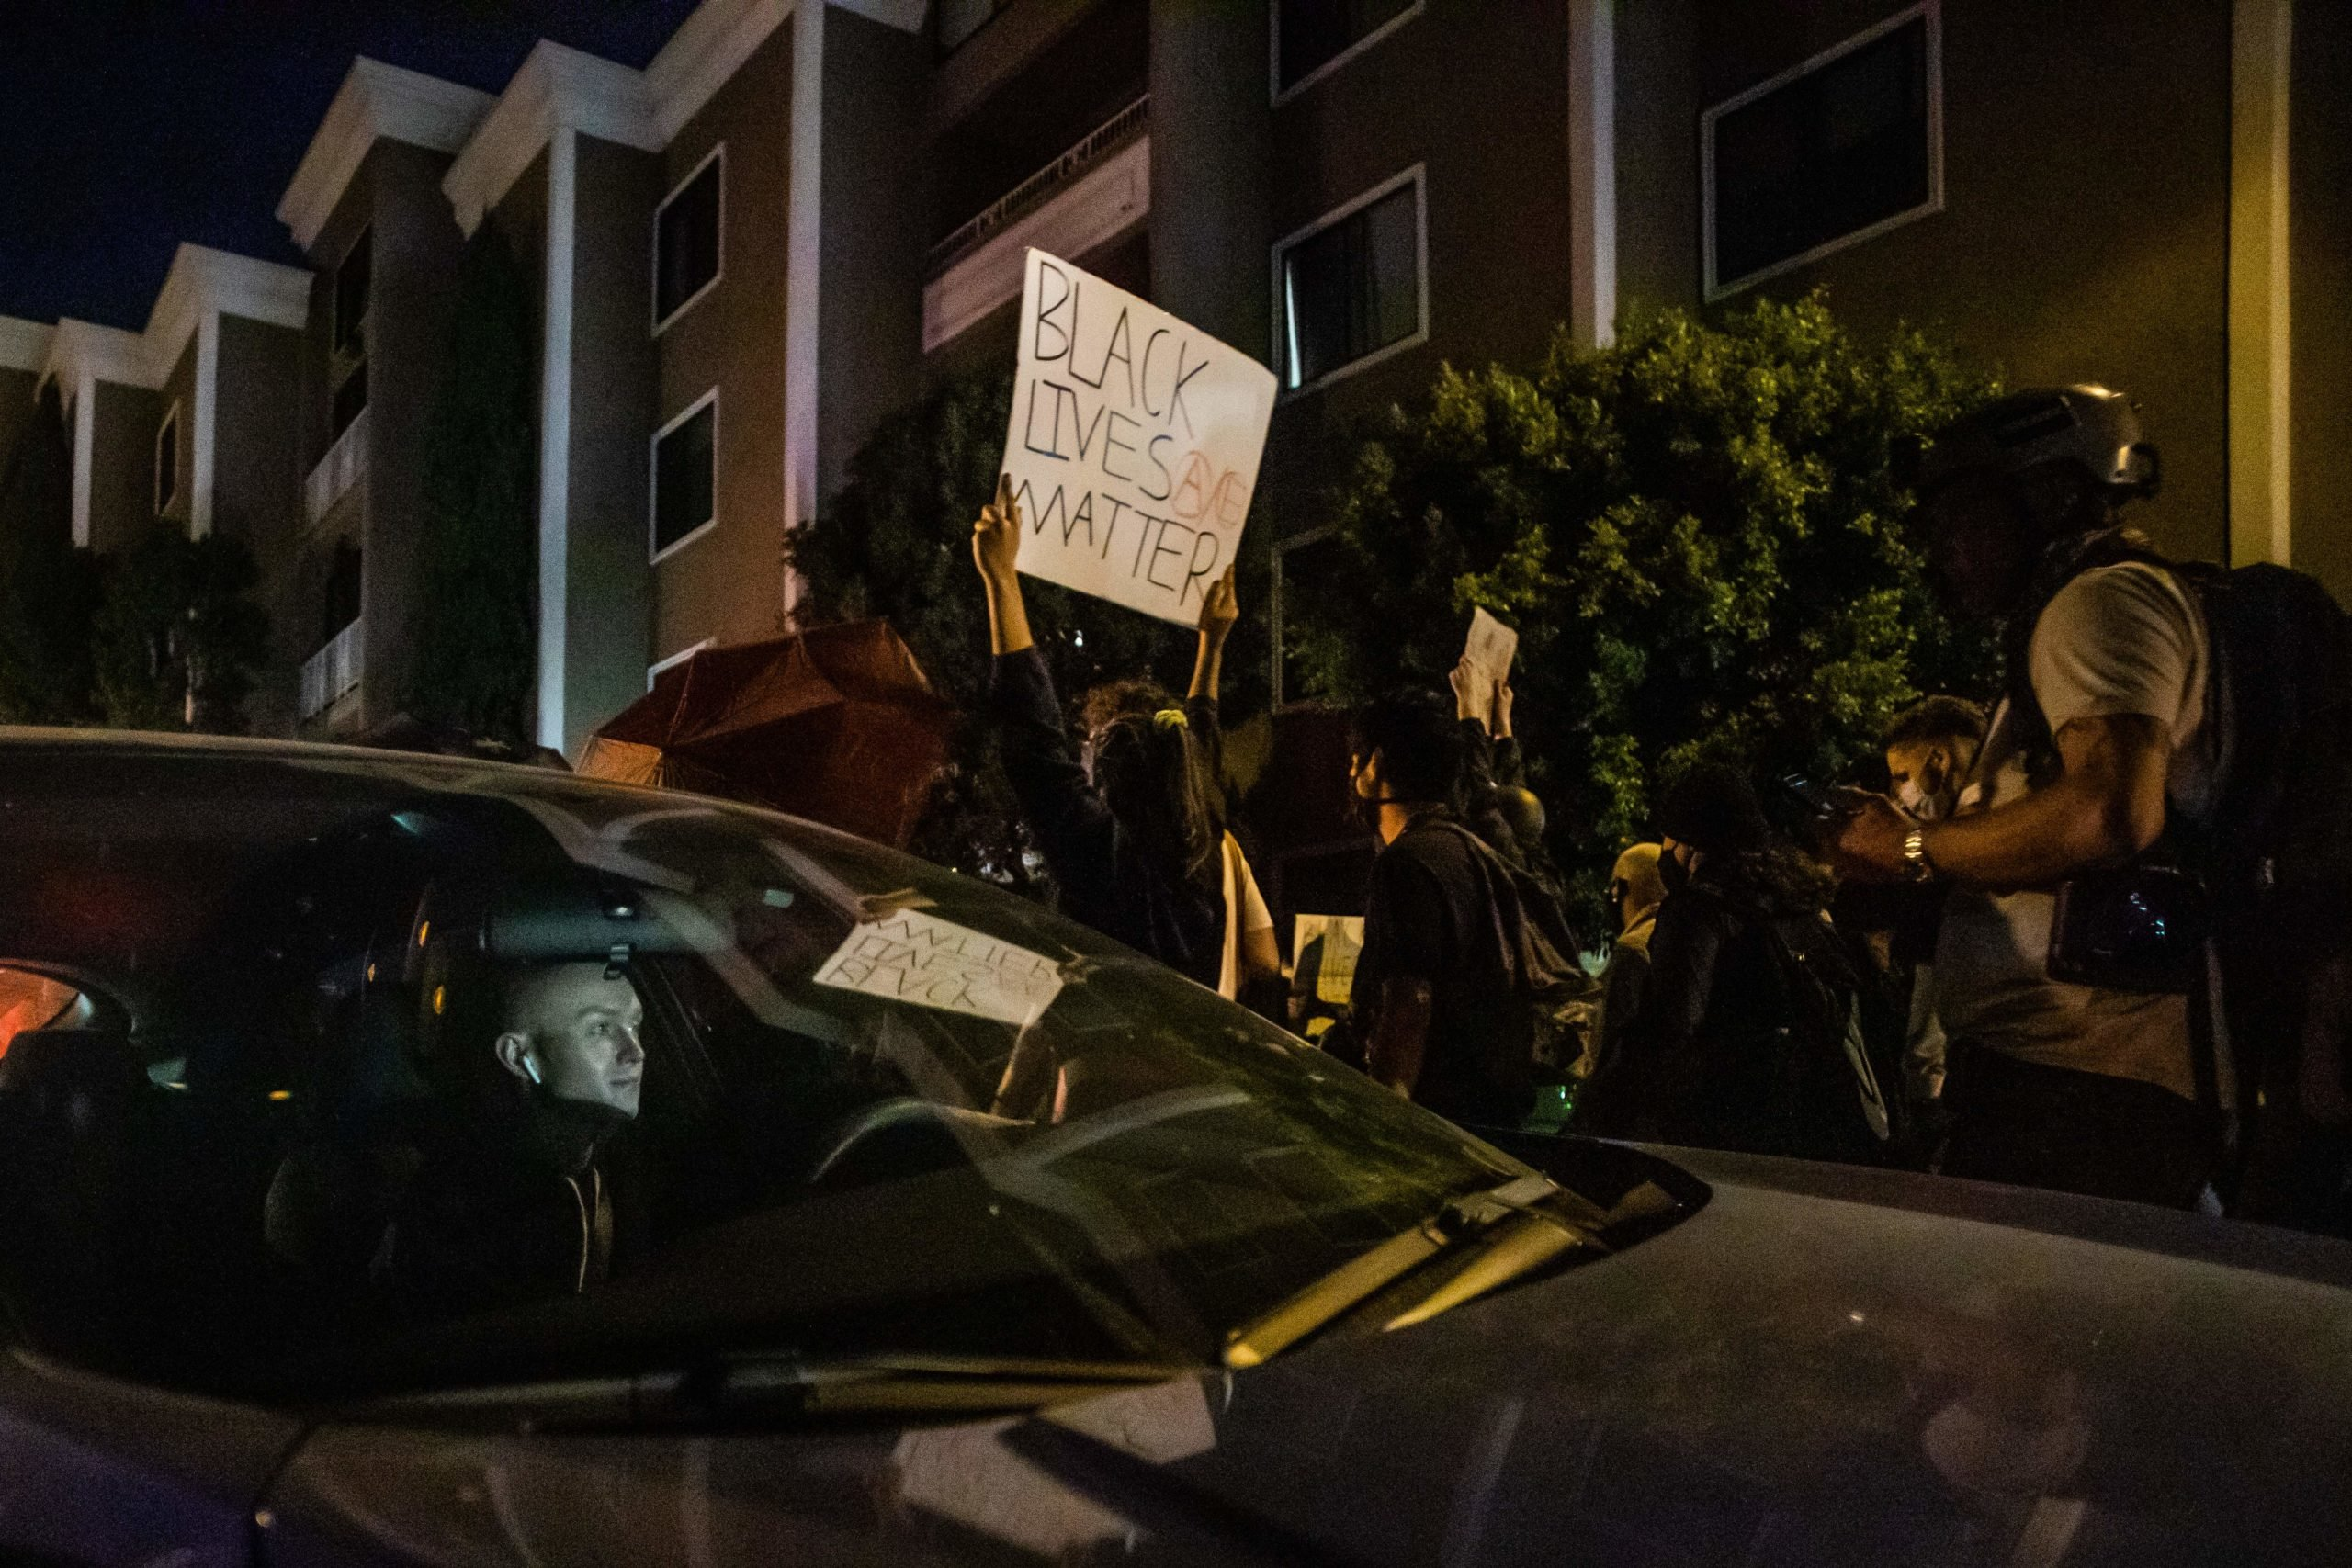 A driver stuck in the protest watches demonstrators passing by his car as they manifest their discontent over the lack of criminal charges in the police killing of Breonna Taylor in West Hollywood, California on September 25, 2020. - The family of Breonna Taylor today, September 25, demanded that US authorities release grand jury transcripts showing why no police will face direct criminal charges over her death, which has once again galvanized protesters angry about racism and police brutality in America. (Photo by Apu GOMES / AFP) (Photo by APU GOMES/AFP via Getty Images)